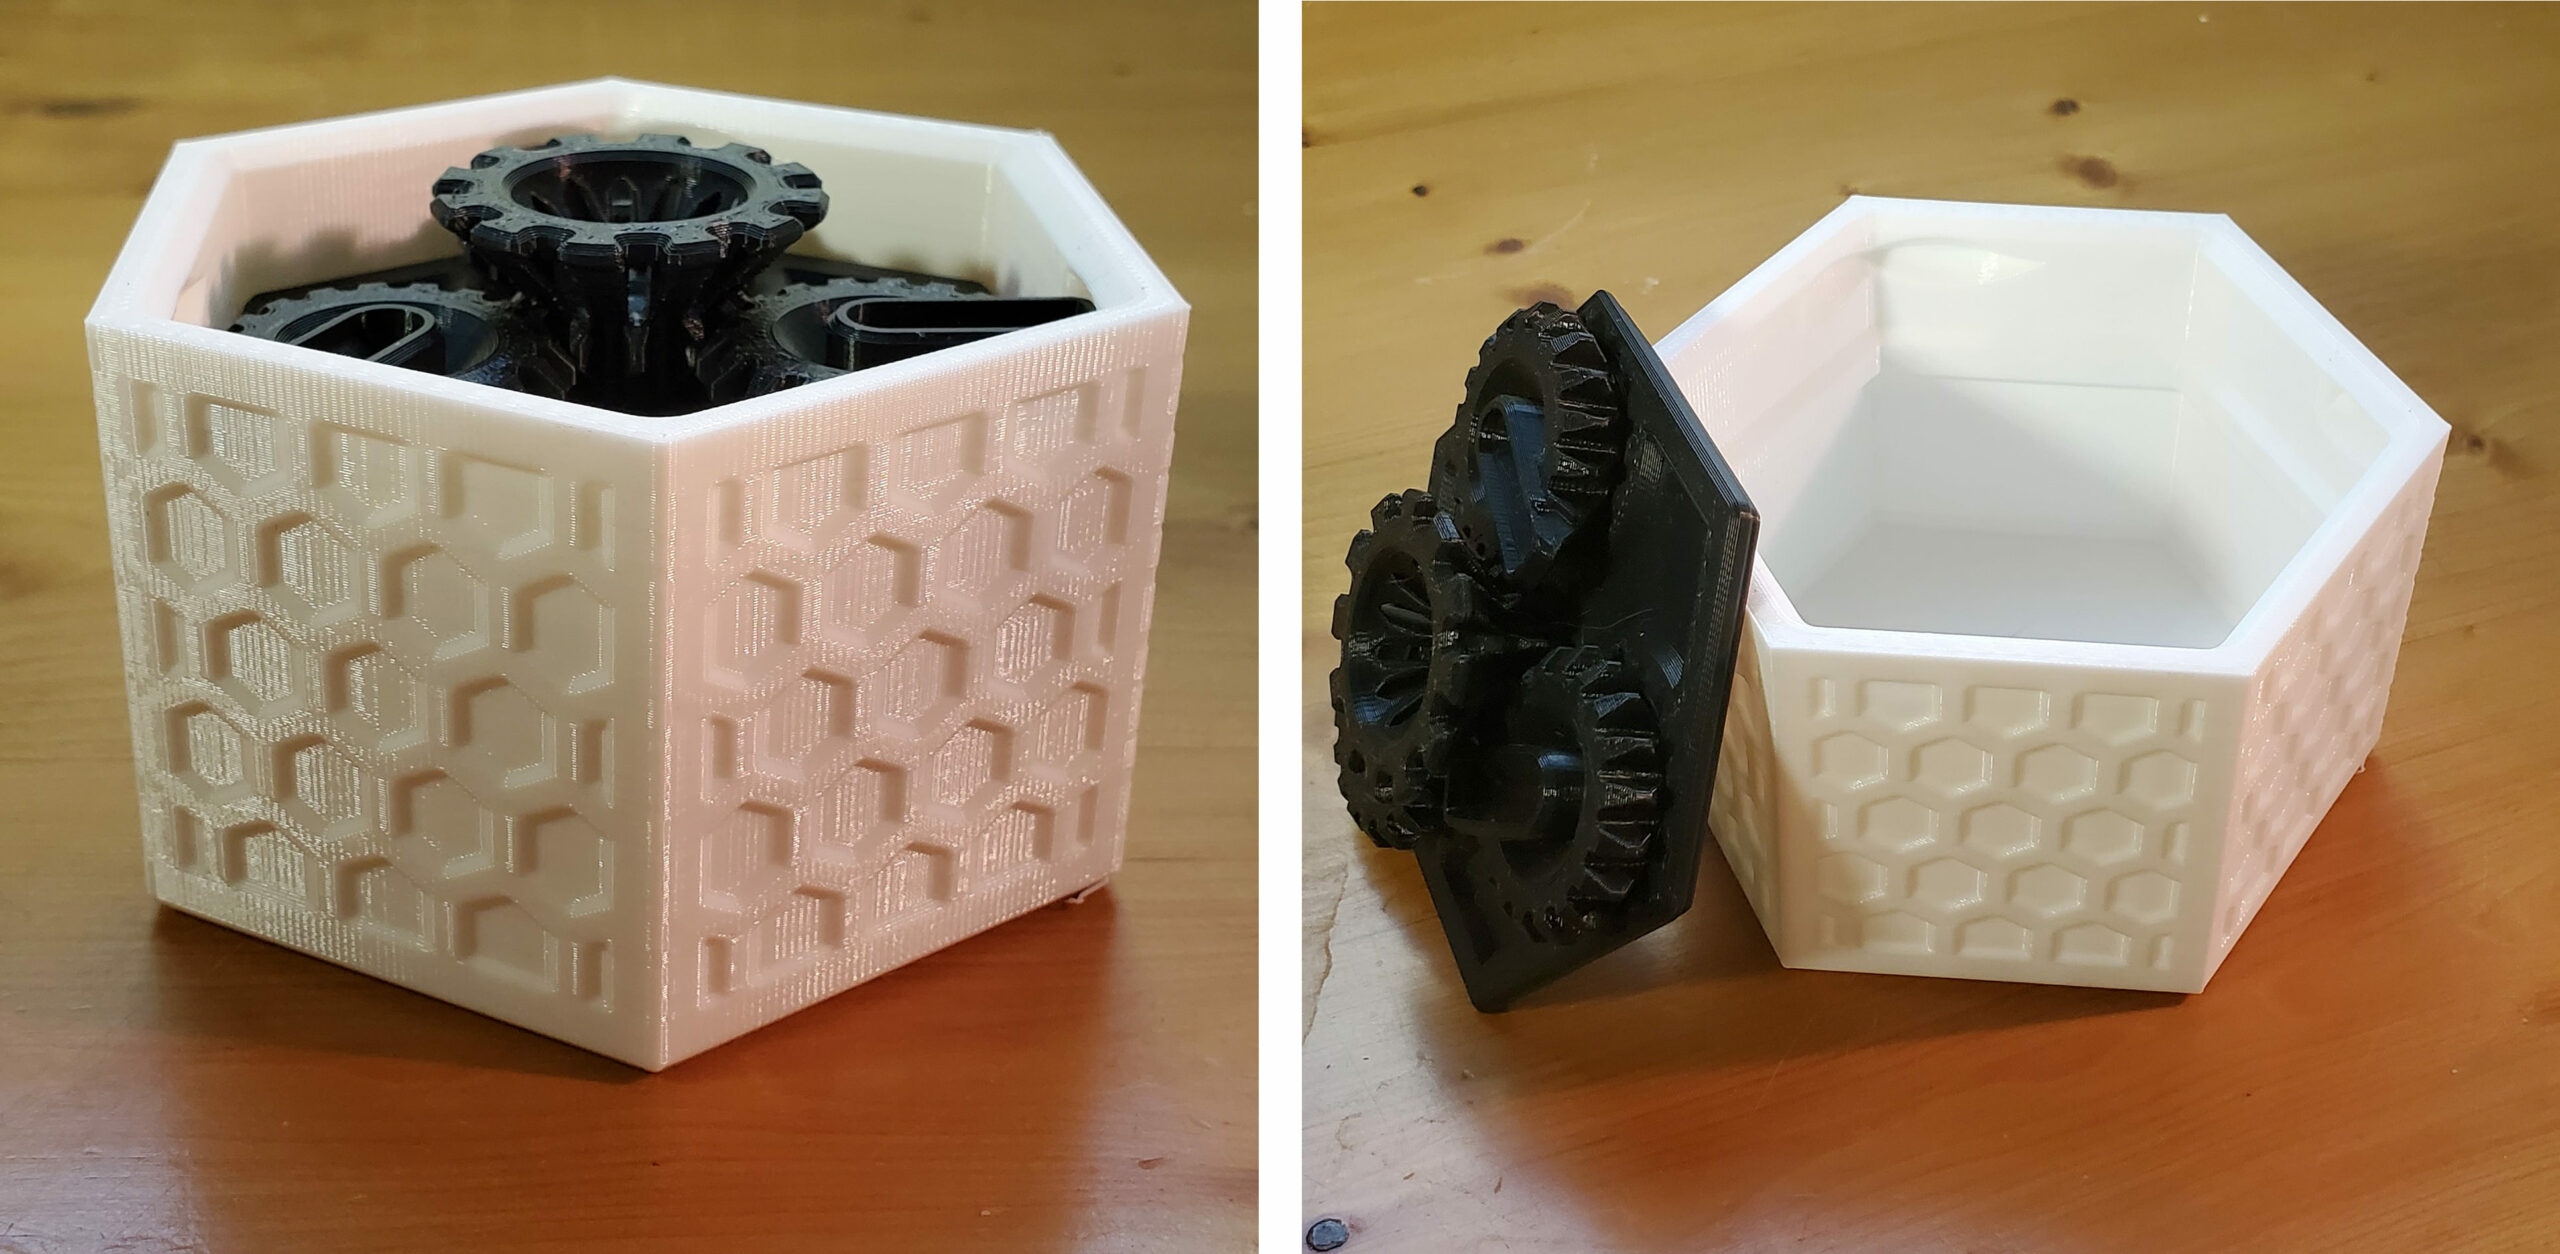 guider2s canister test print